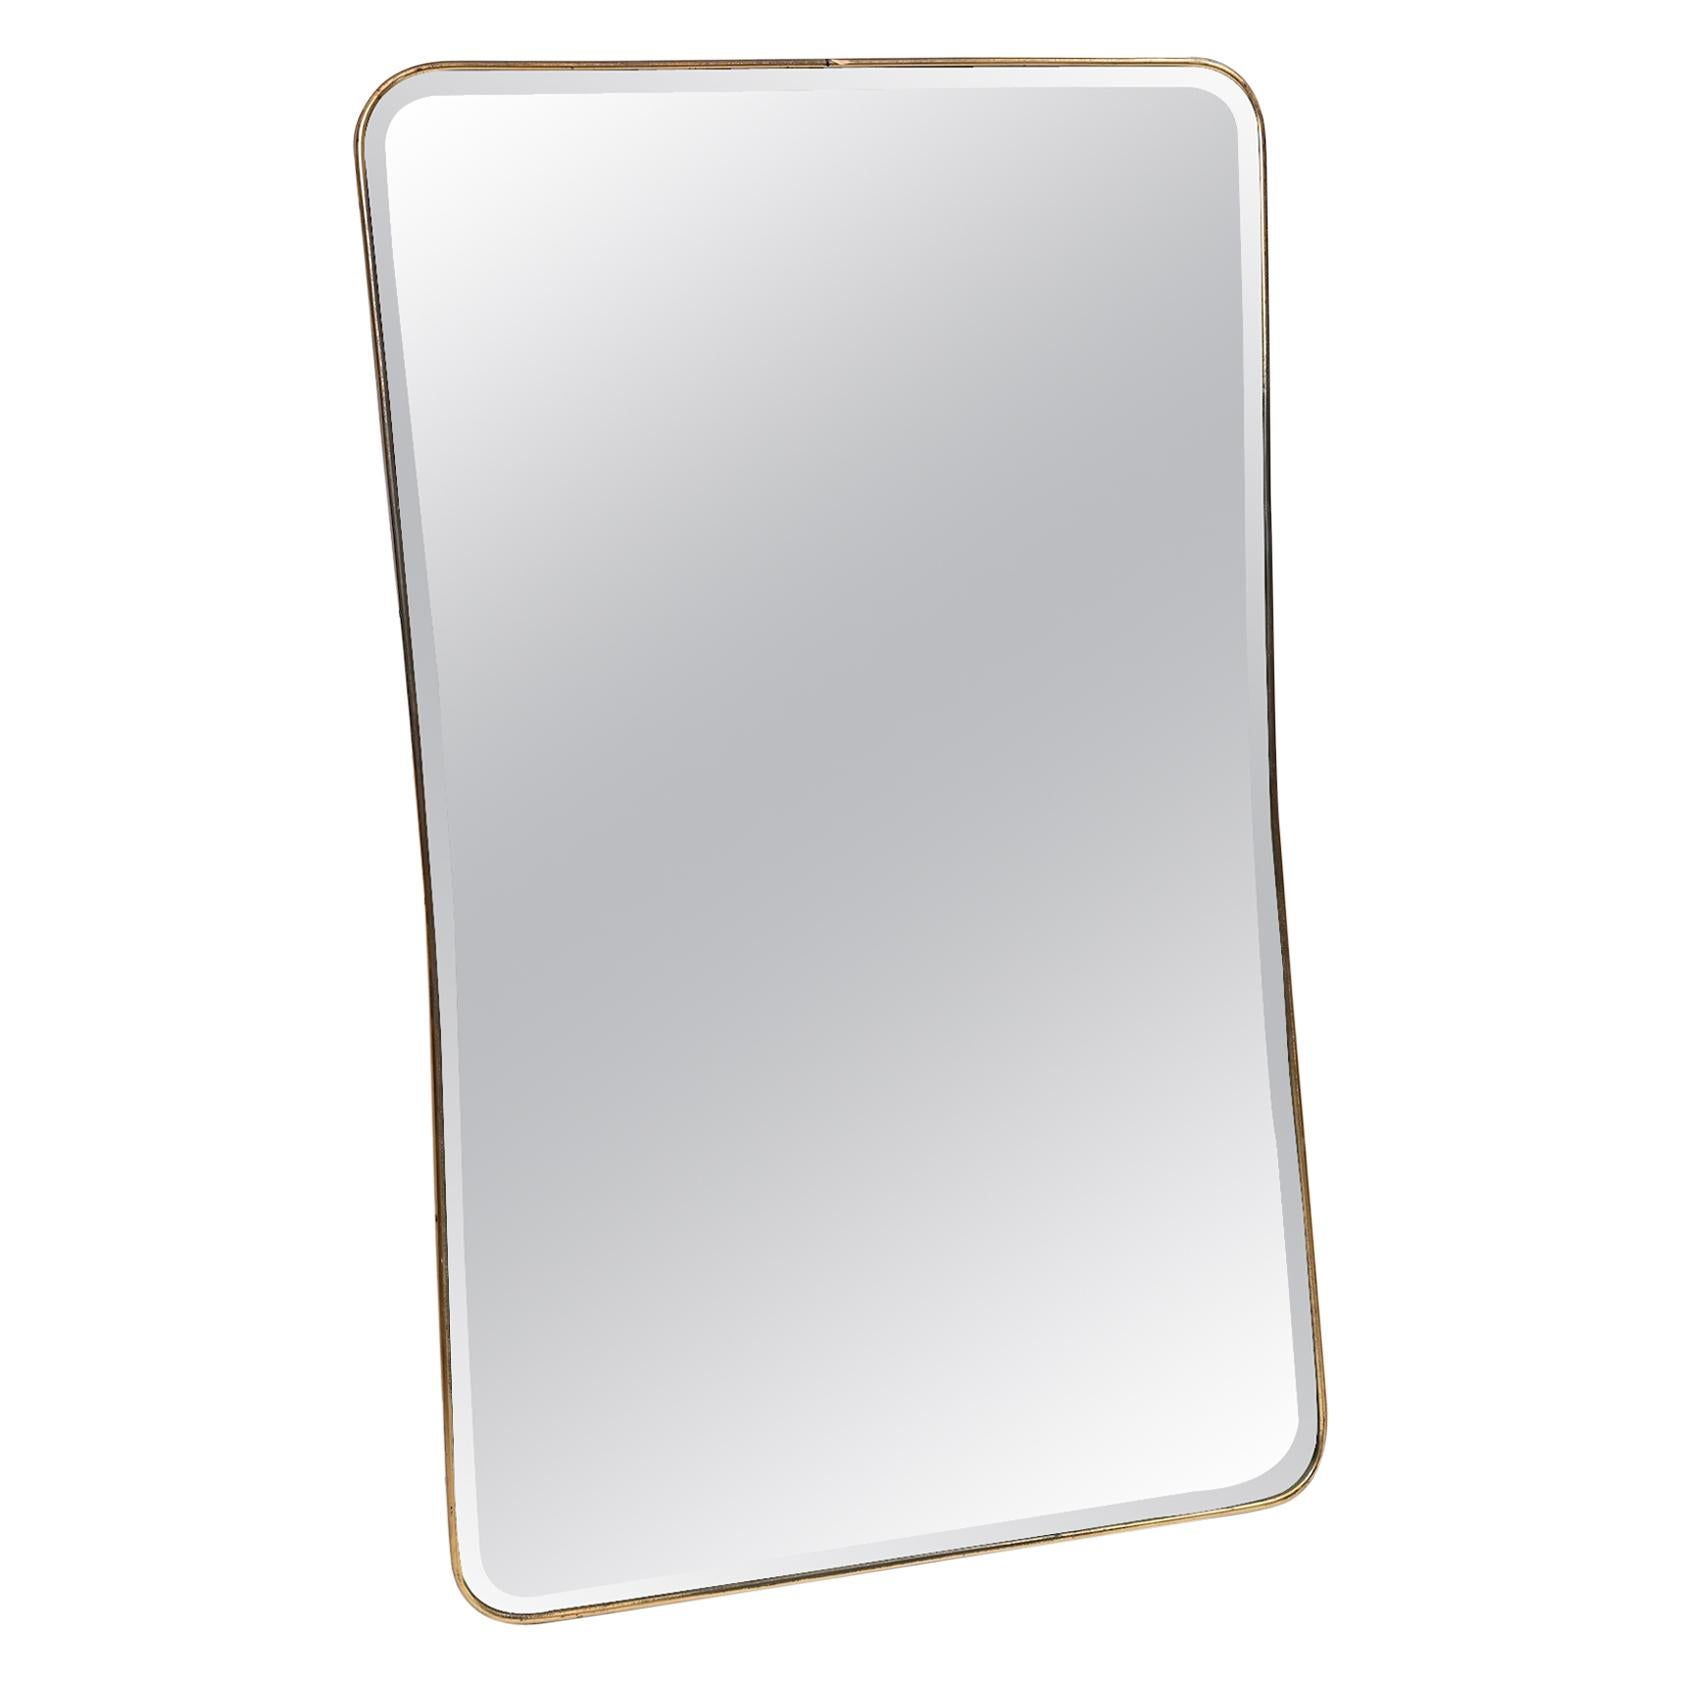 Original 1950s Bevelled Mirror with Brass Frame Ponti Style